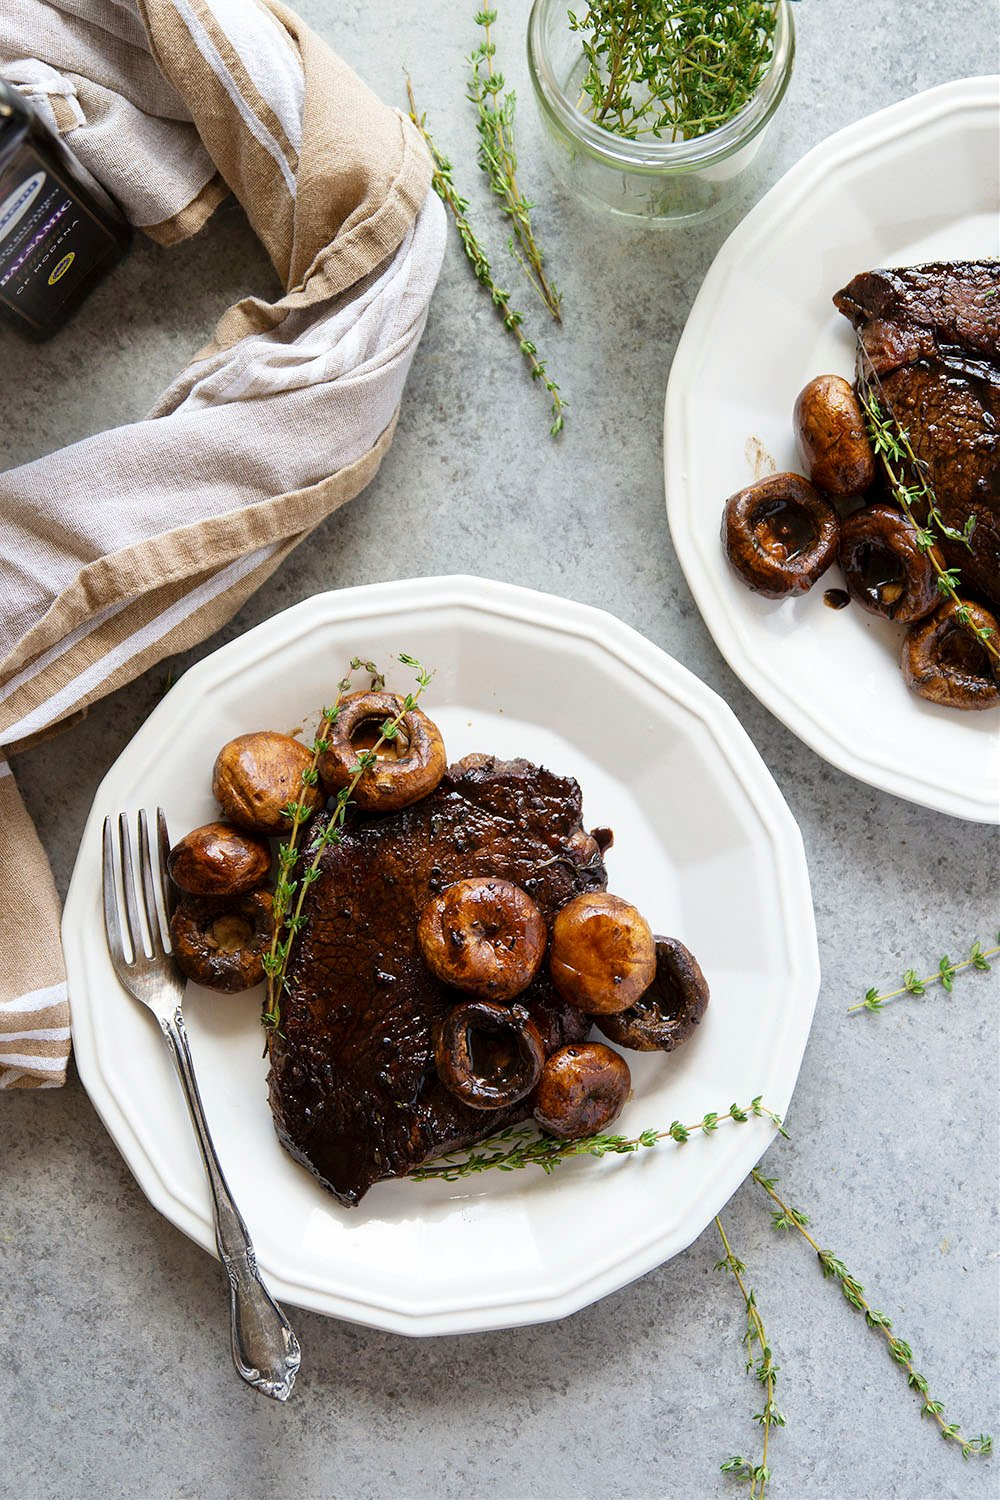 This balsamic glazed steak is made entirely in one skillet and features juicy seared steaks in a rich balsamic glaze with plenty of sauteed mushrooms on the side.